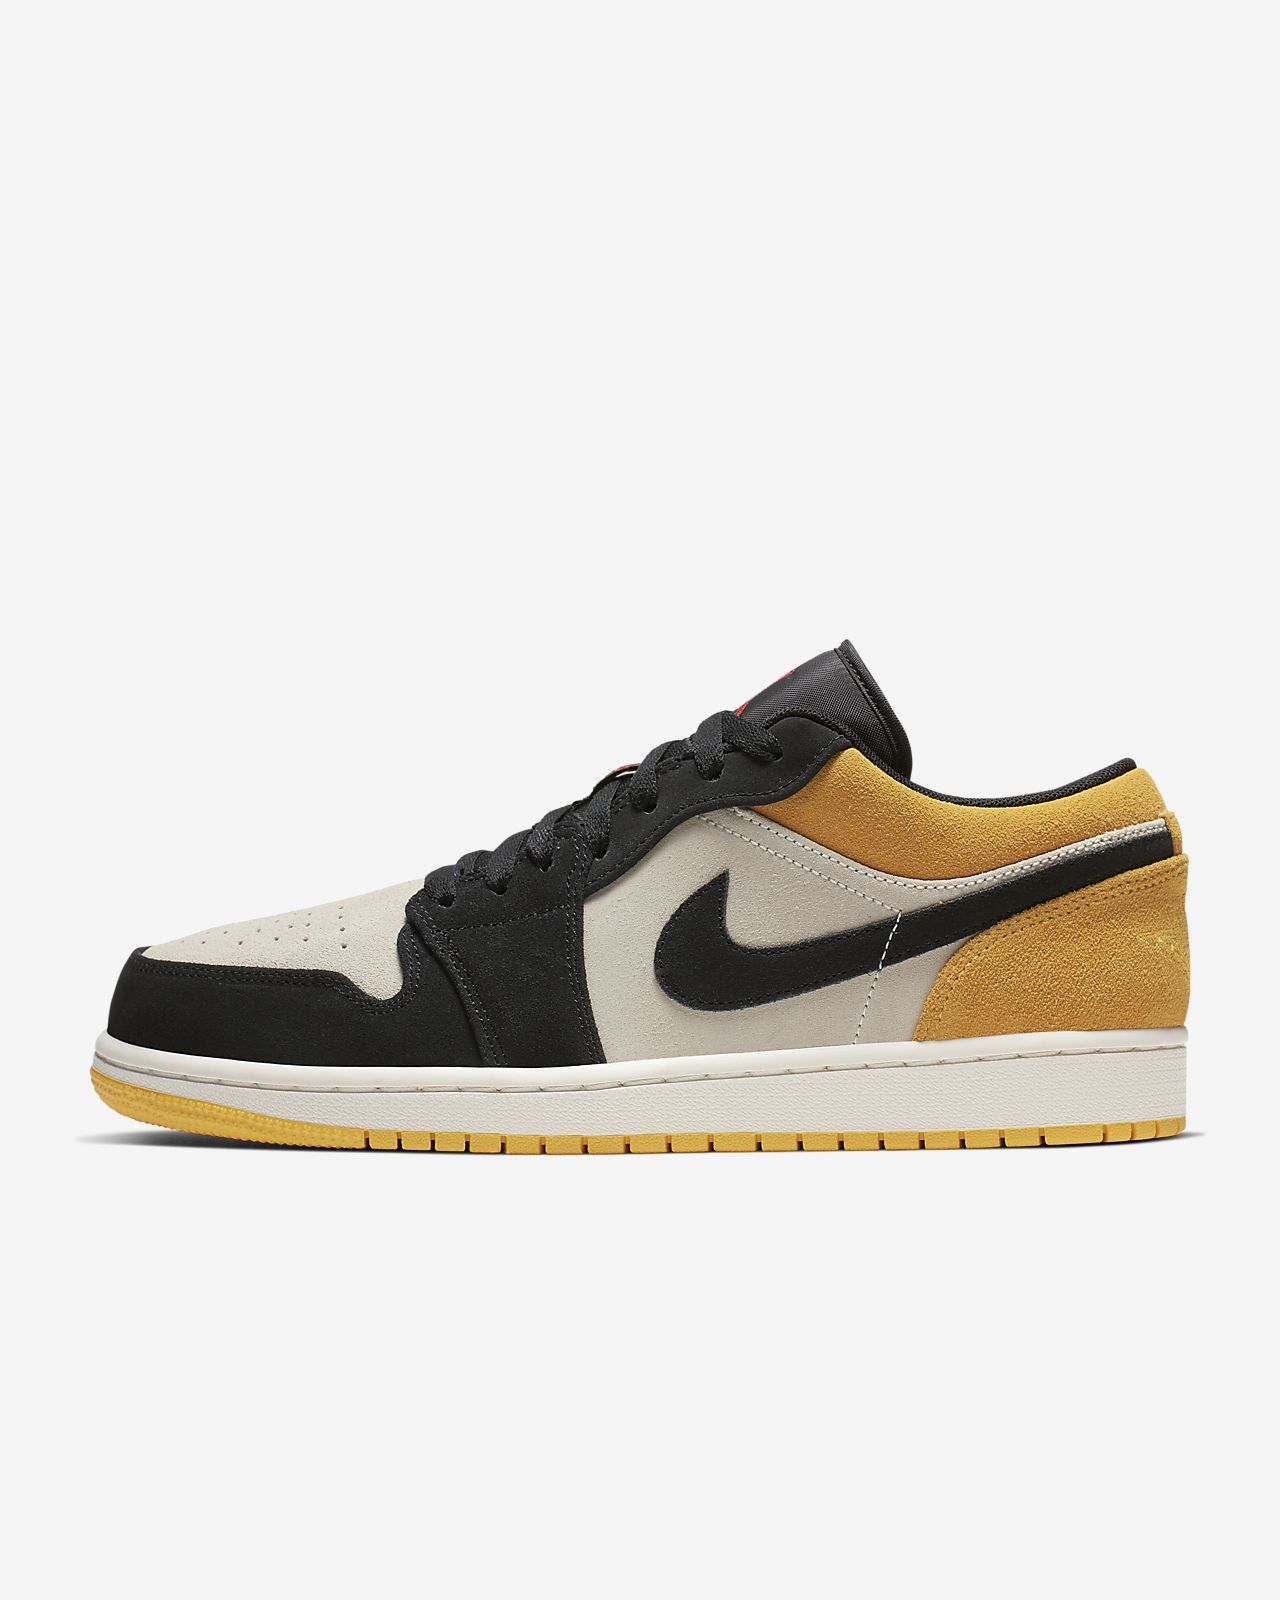 low priced 7a7ad 84b9c Air Jordan 1 Low